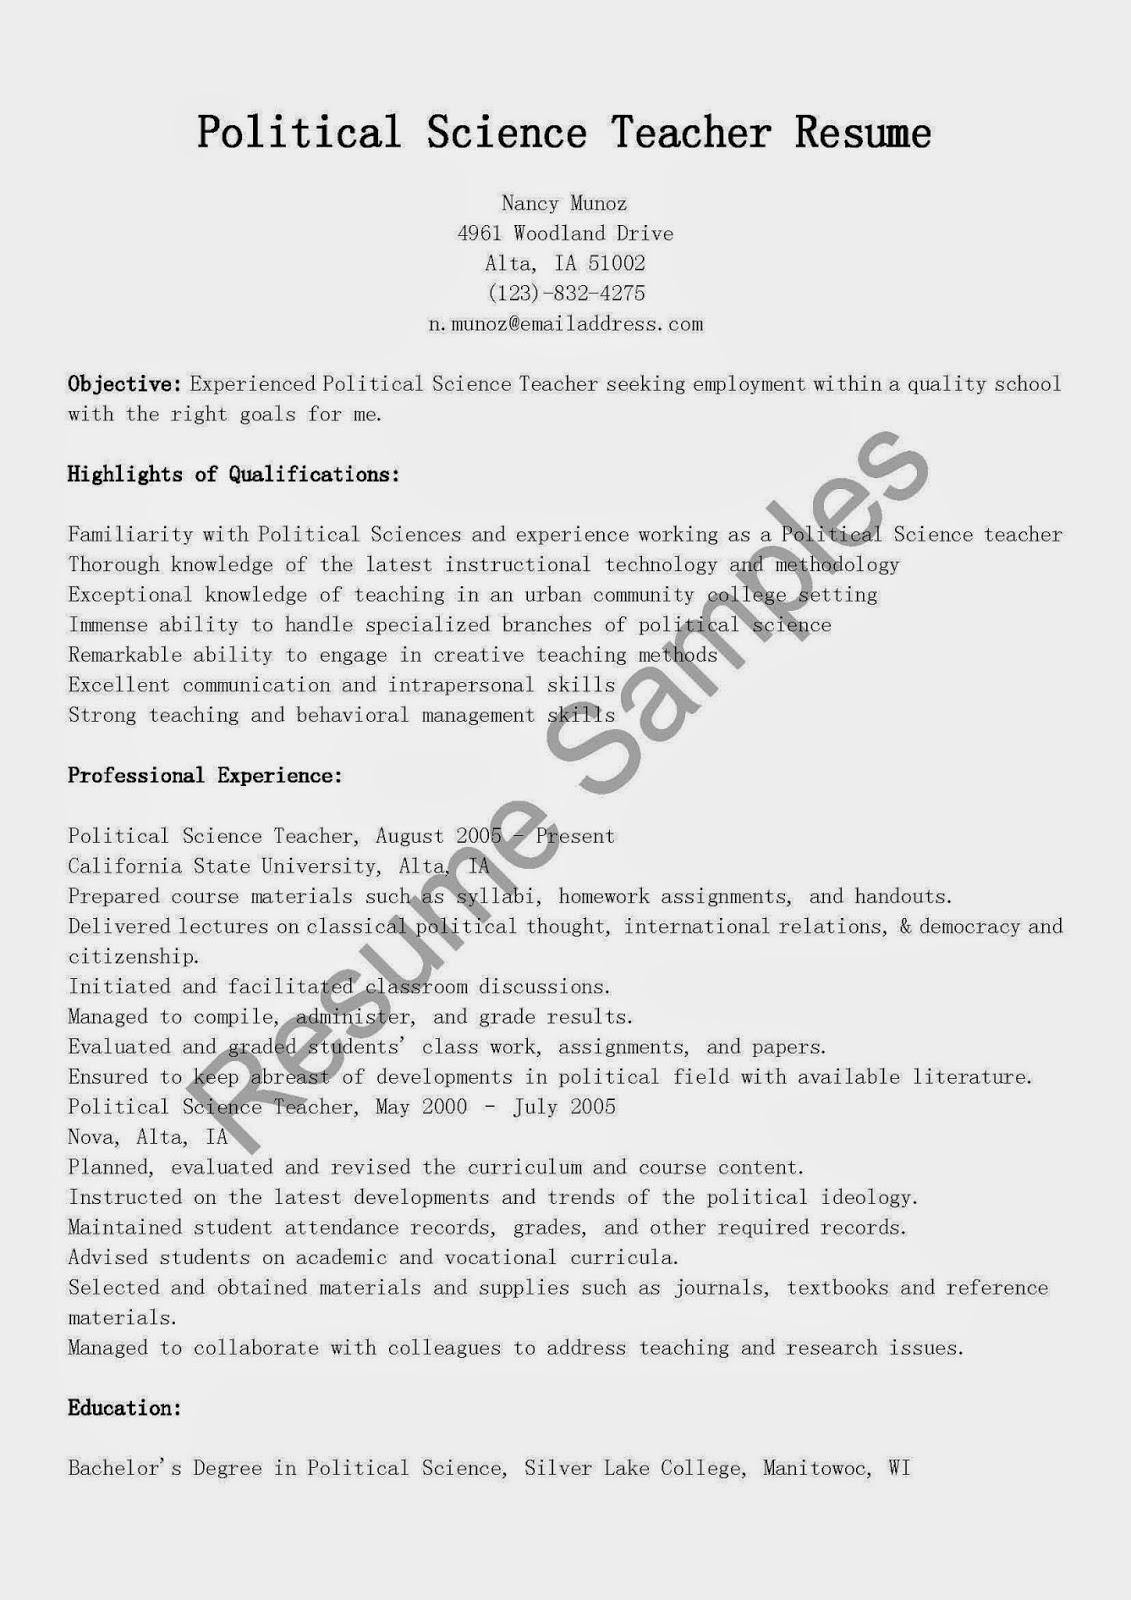 How To Write A Waiter Server Resume Volunteer | Professional Resume ...